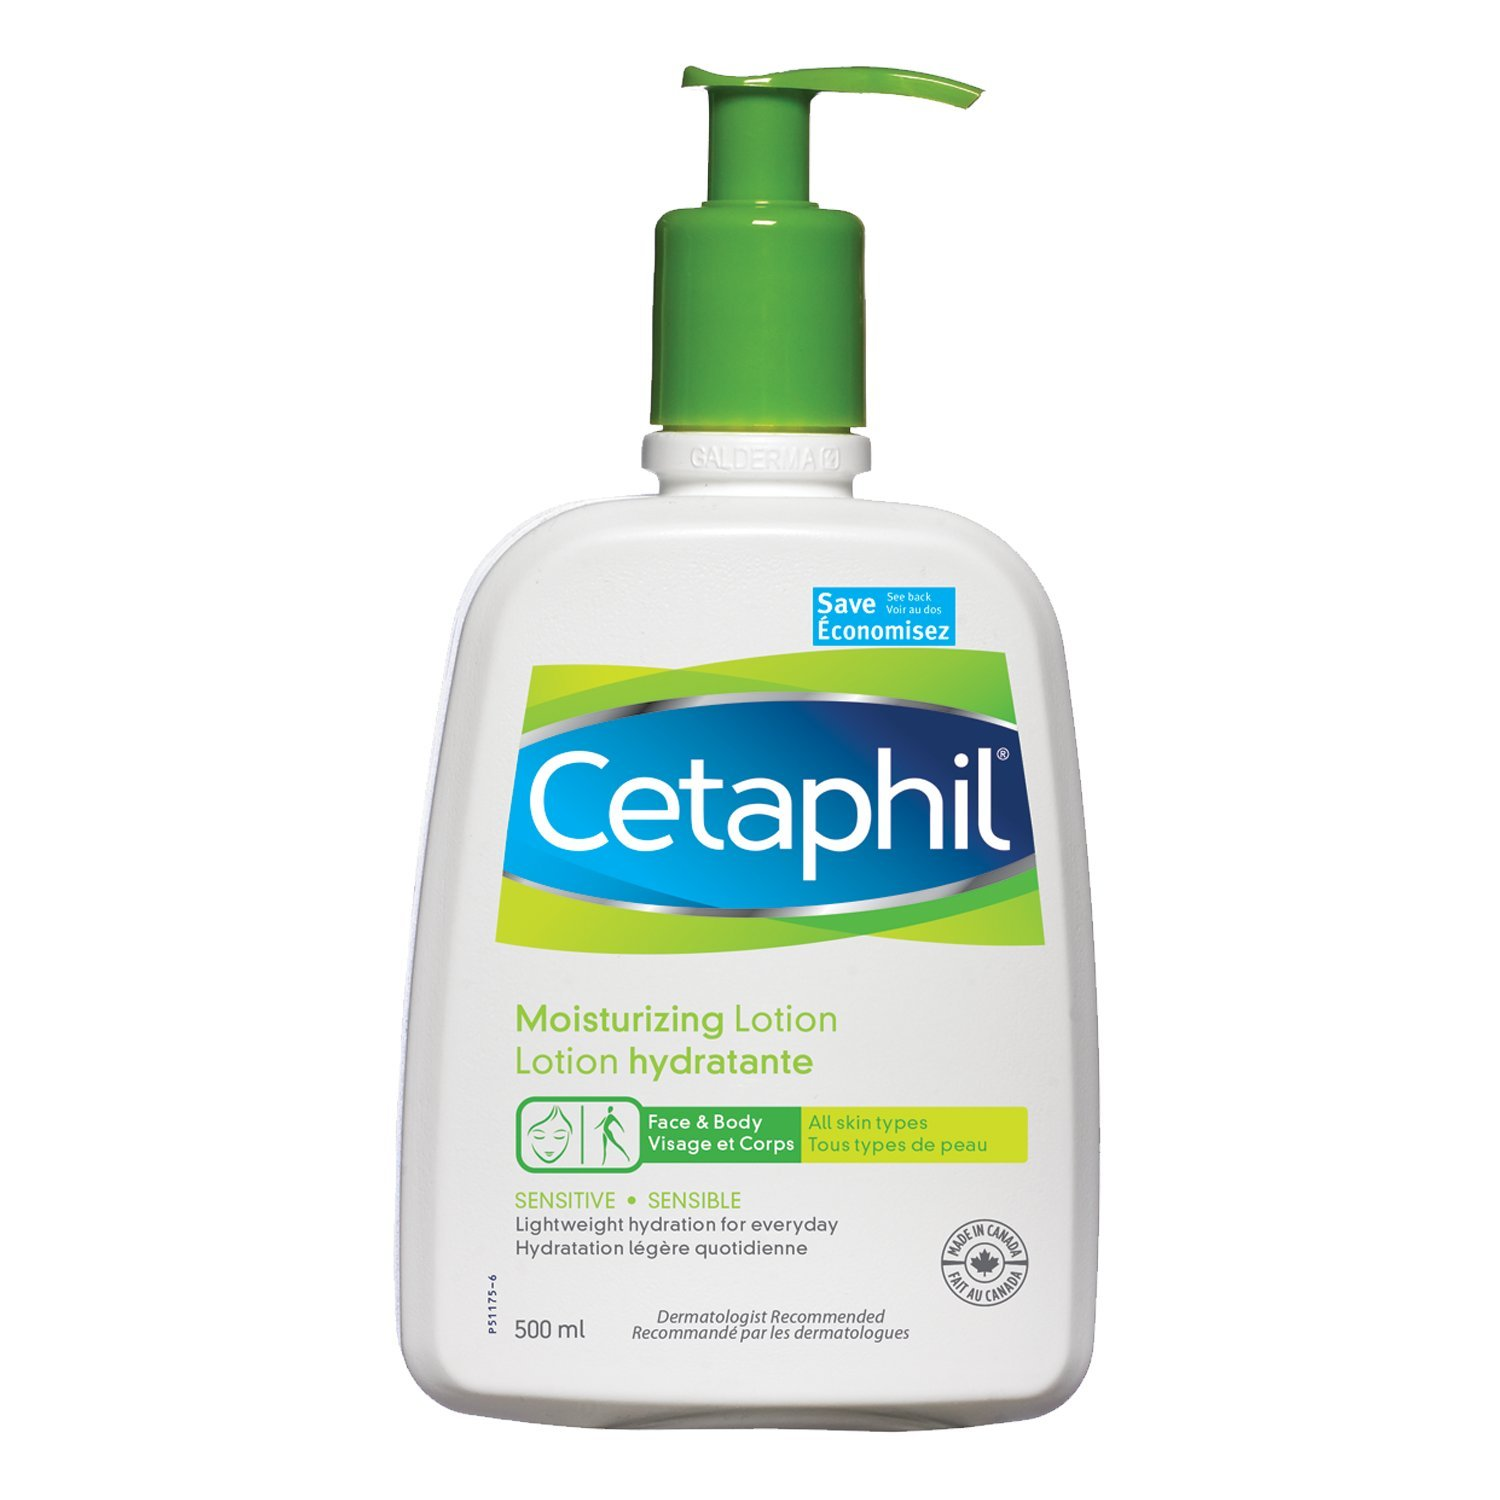 $12.99 (was $17.99) Cetaphil Moisturizing Lotion 500ml